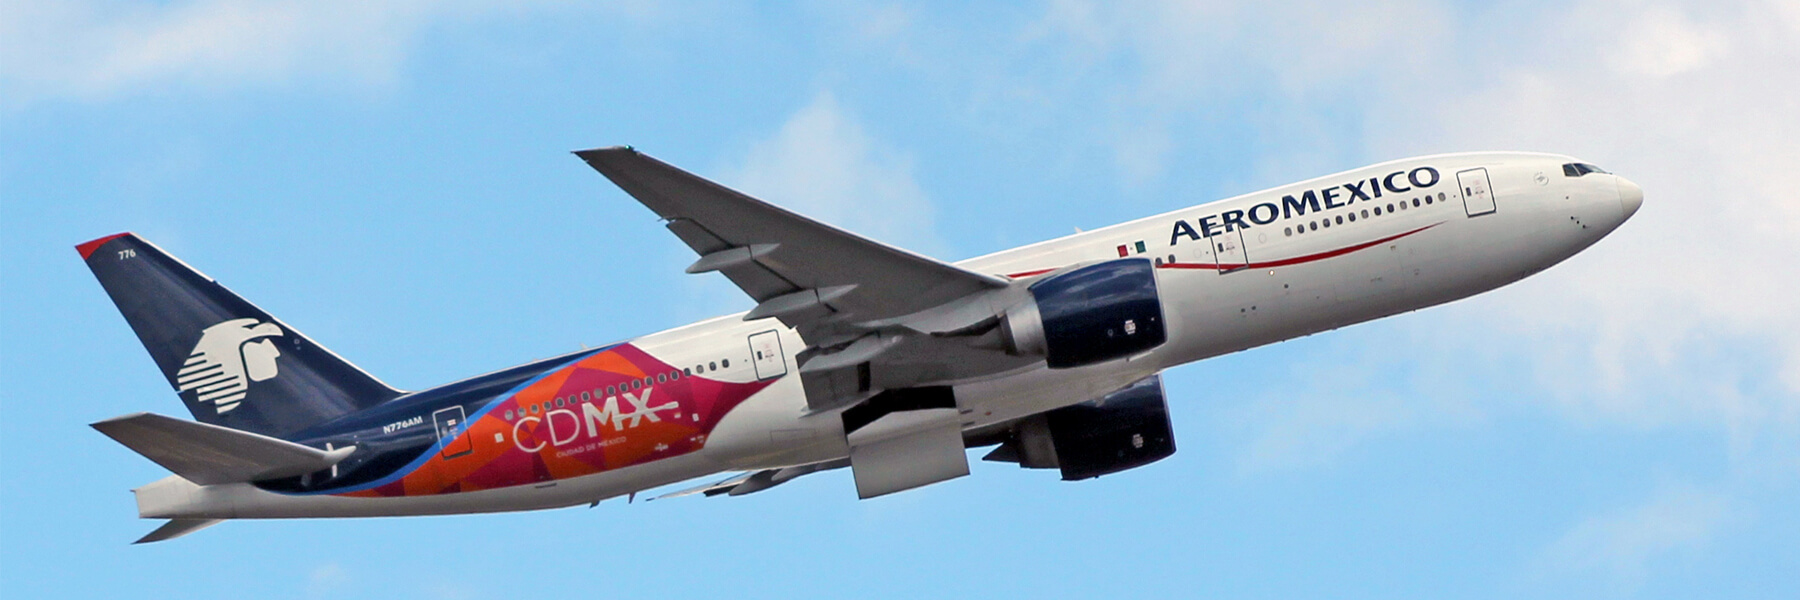 Delta and Aeroméxico Partnership Announced